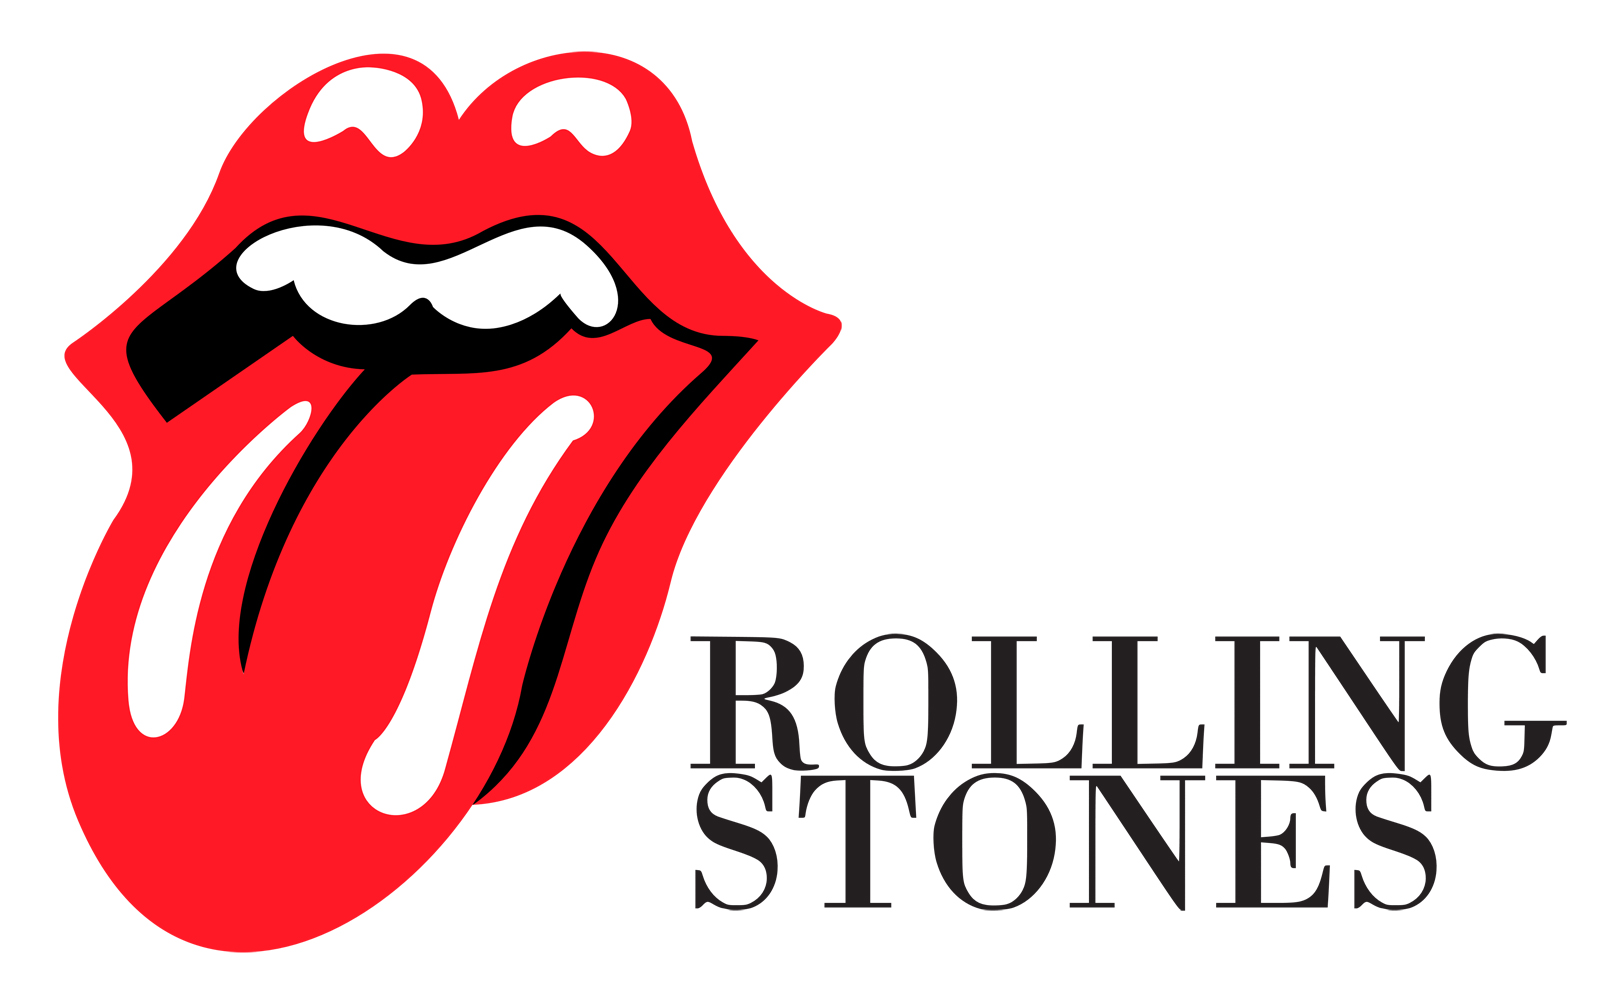 1600x996 Rolling Stones Logo, Rolling Stones Symbol, Meaning, History and